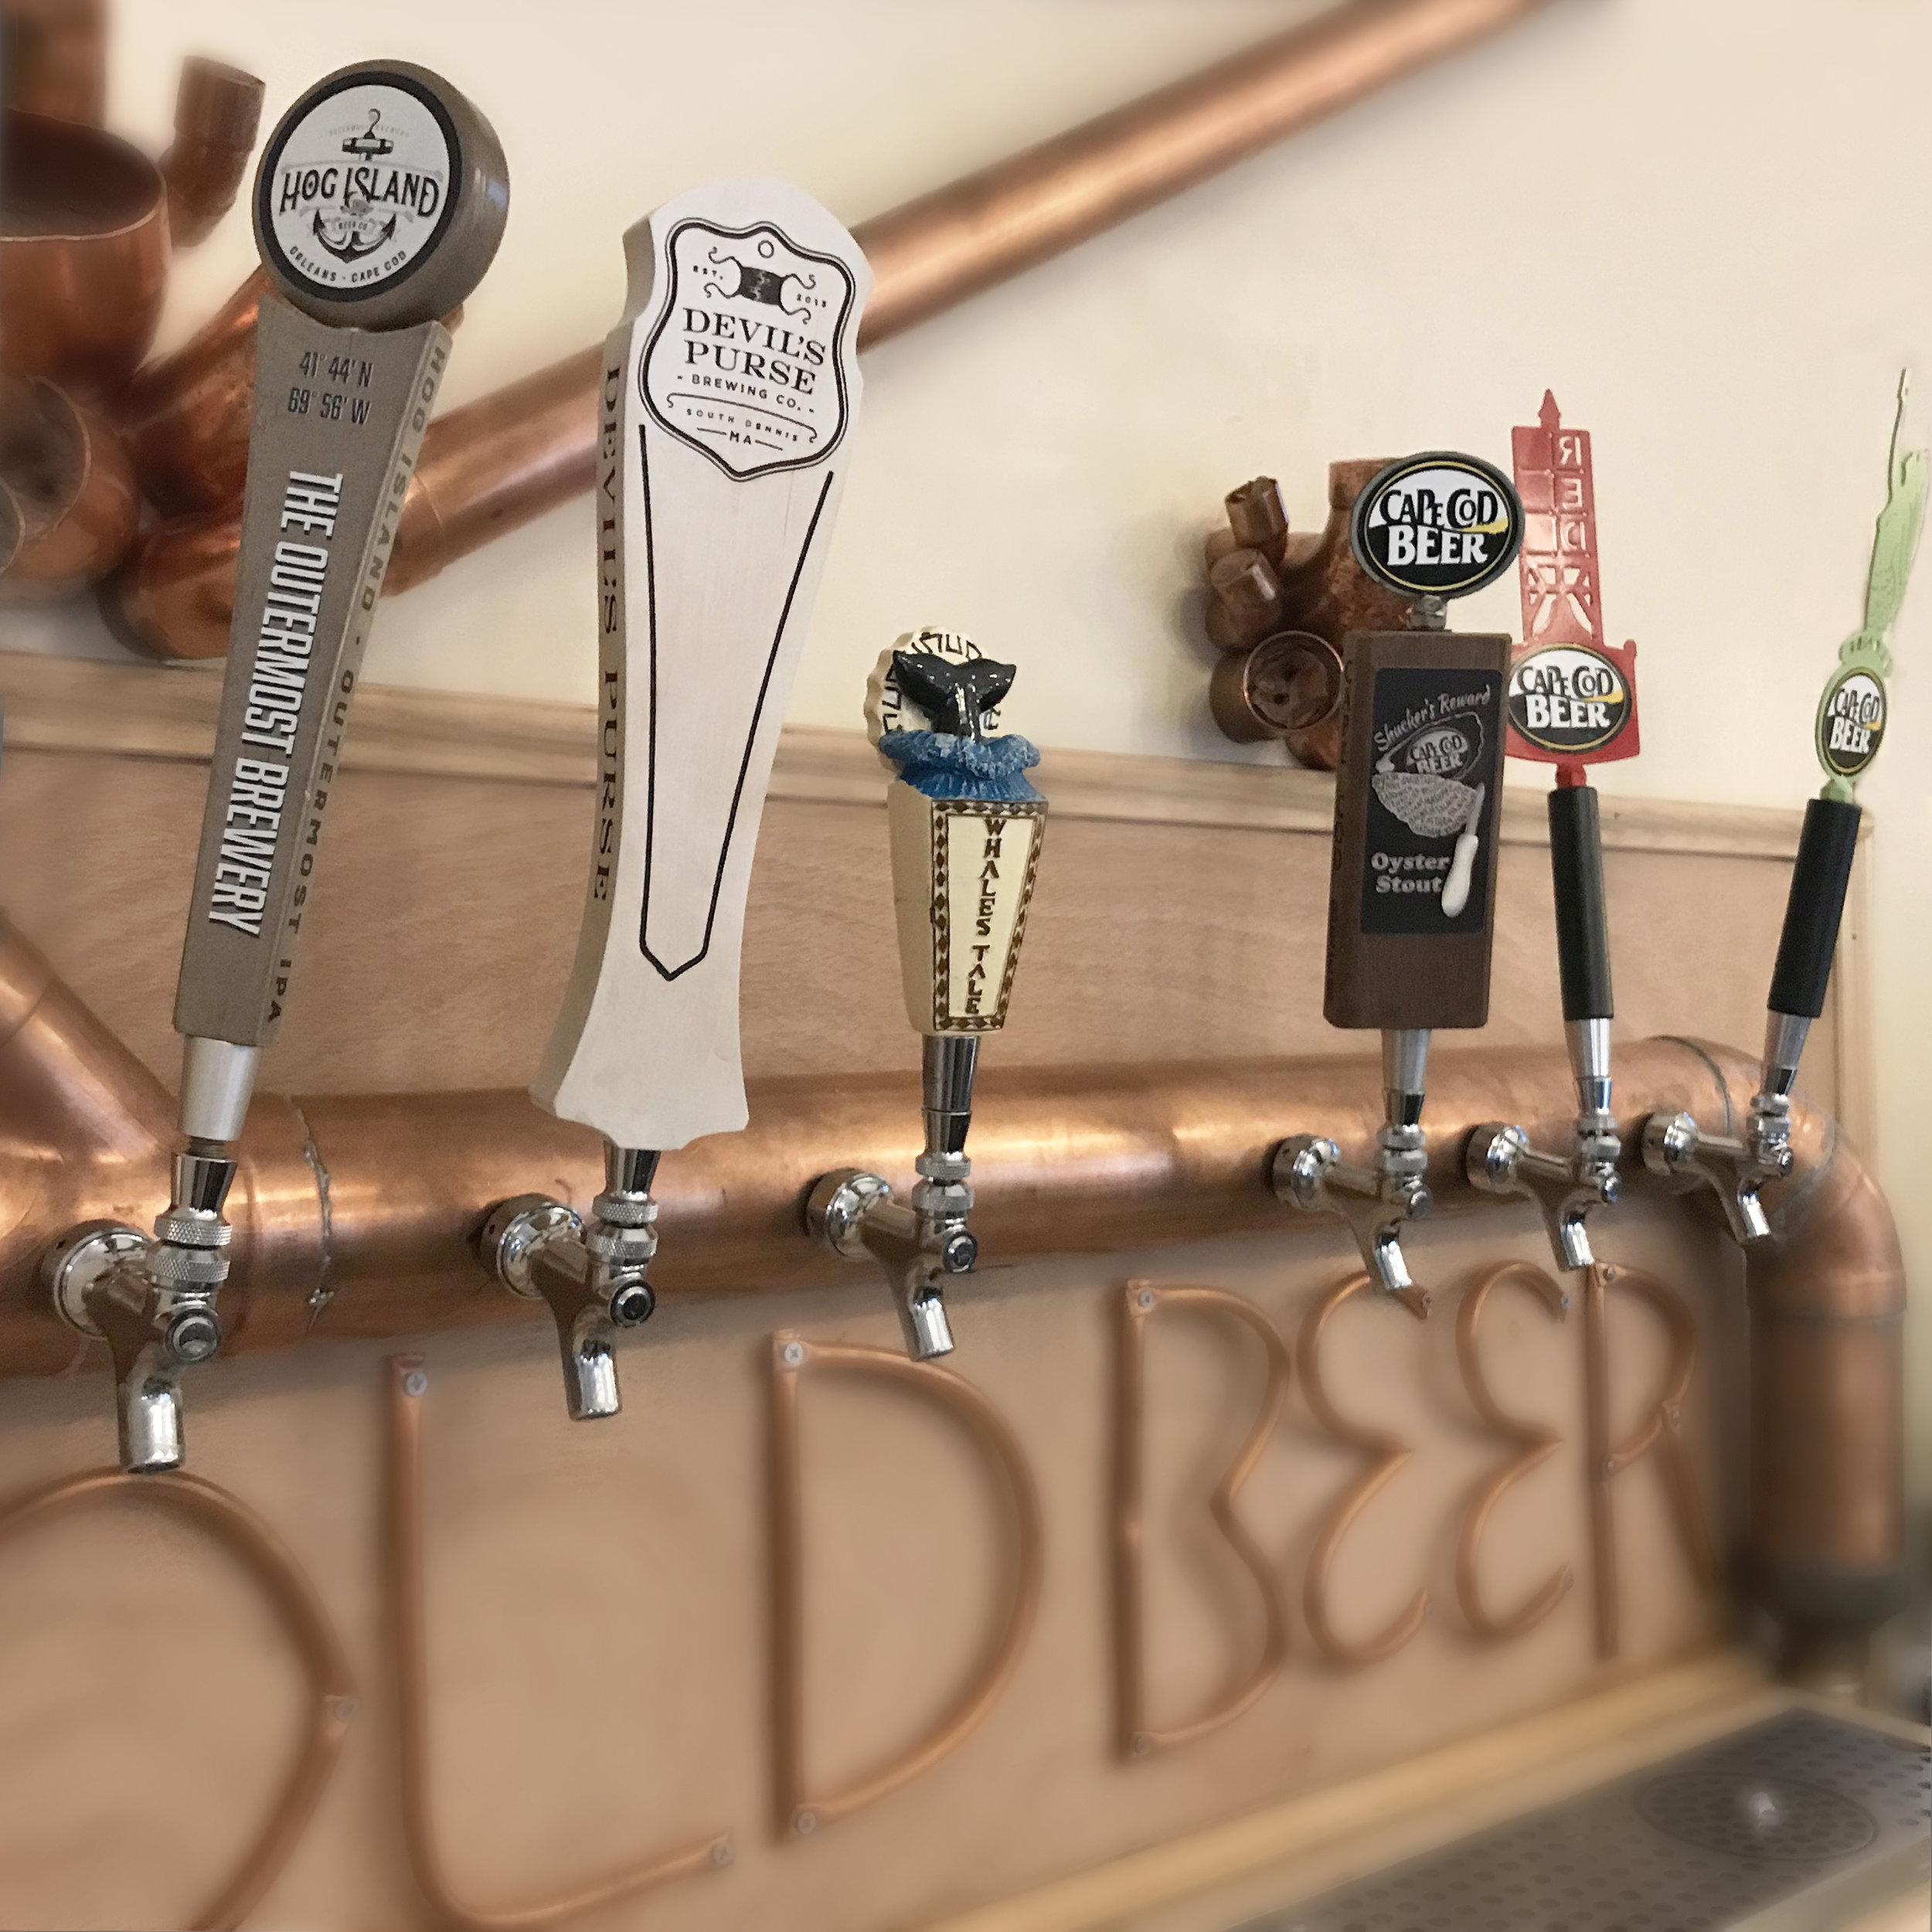 craft on draft - We feature a rotating variety of local craft beer on tap